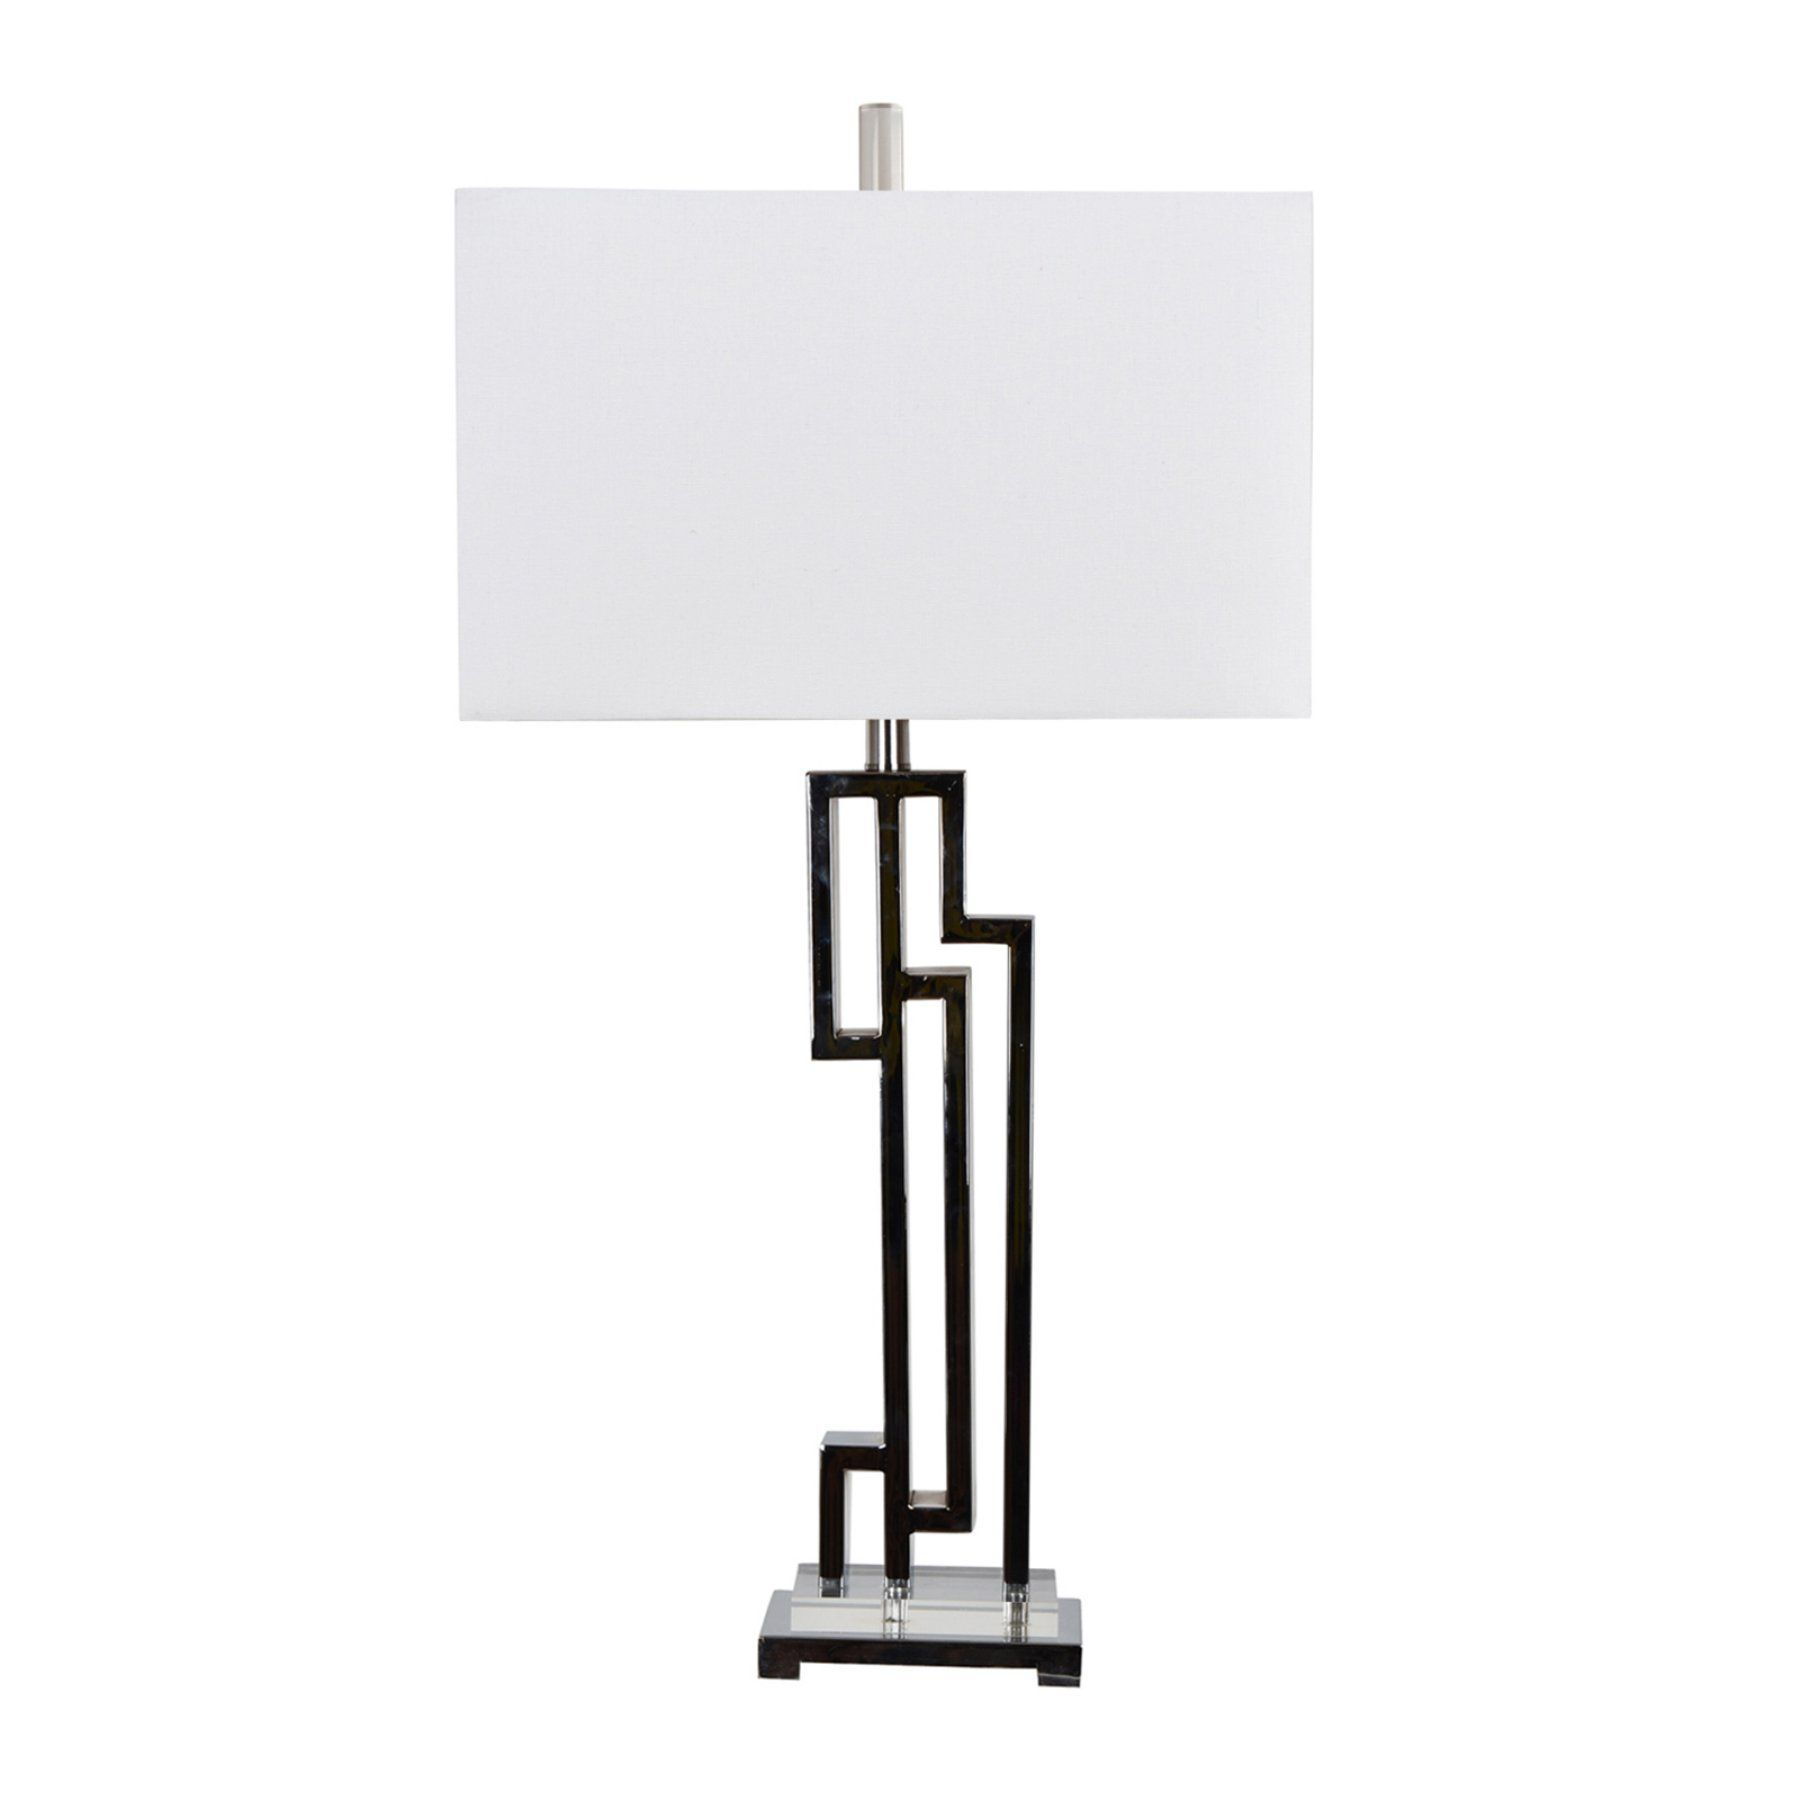 Crestview collection maze table lamp cvaer1012 products crestview collection maze table lamp cvaer1012 geotapseo Gallery